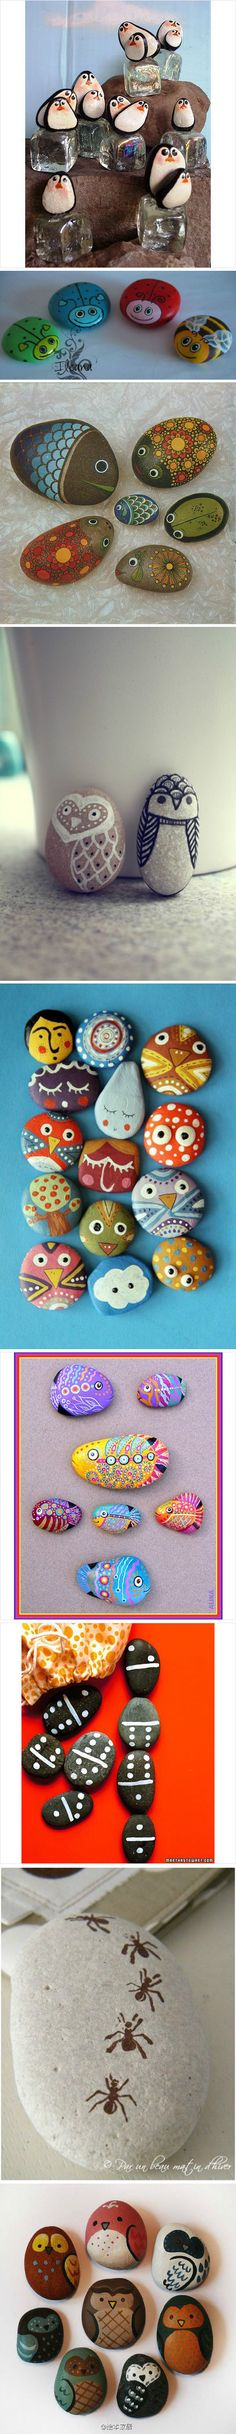 penguin-painted rocks